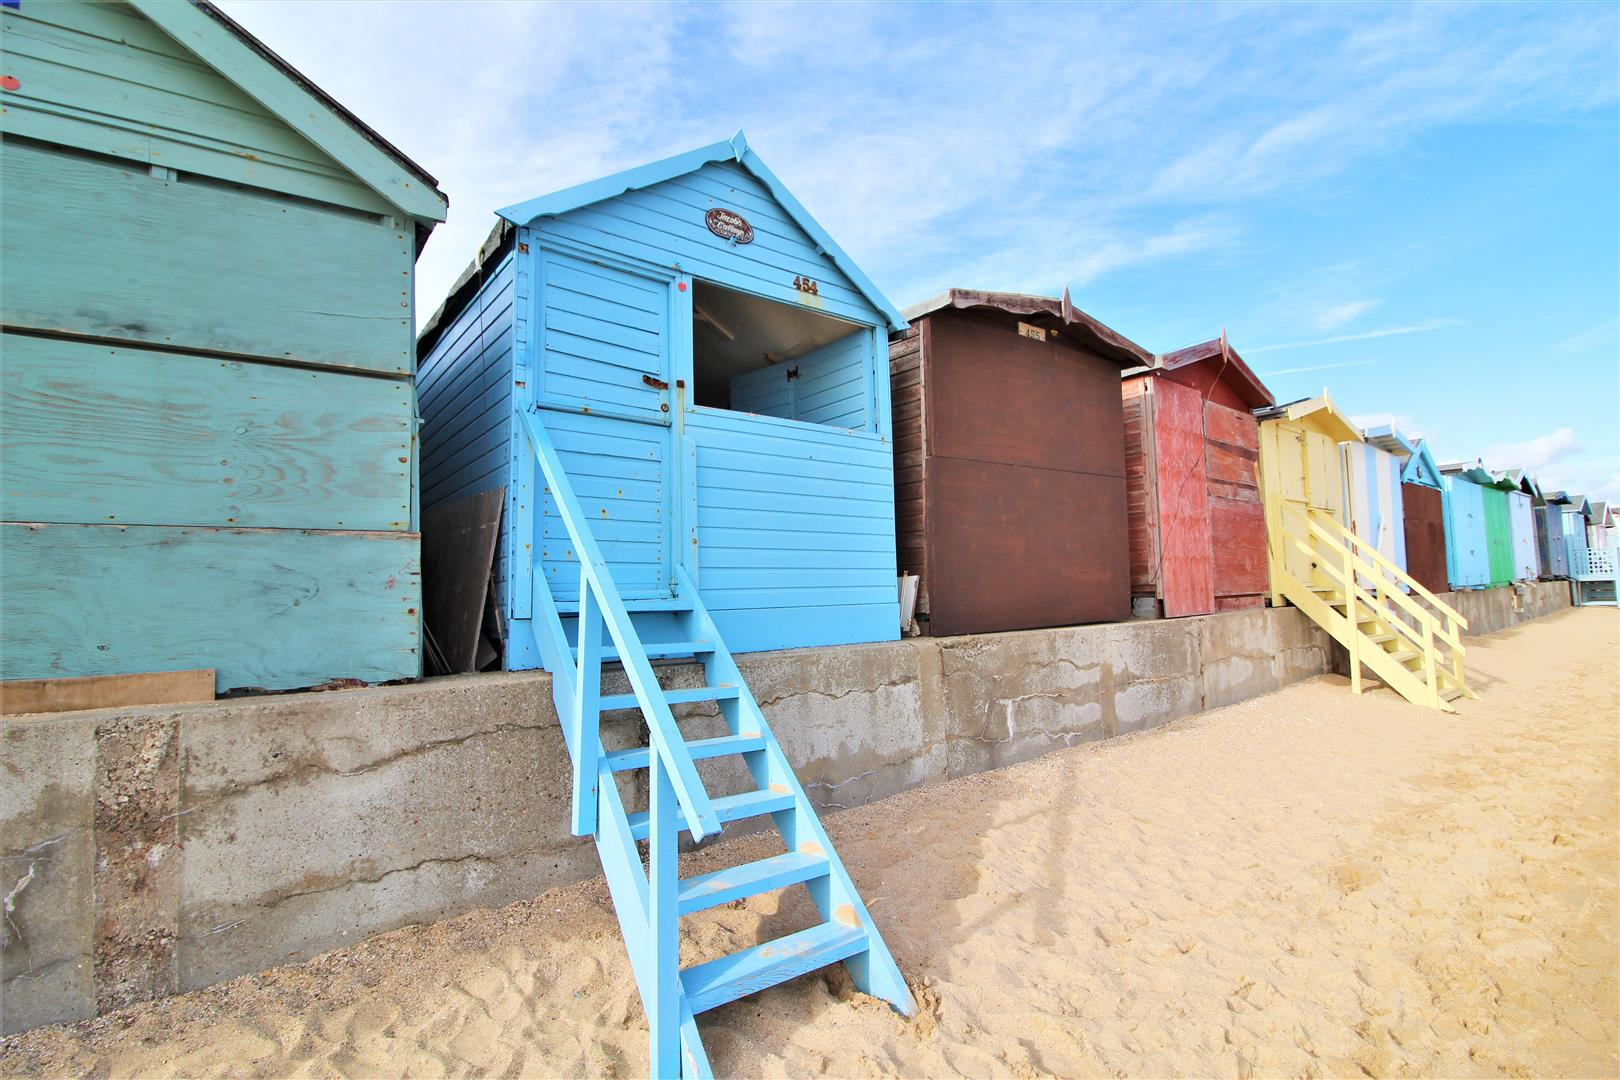 East Cliff, Walton On The Naze, Essex, CO14 8HA